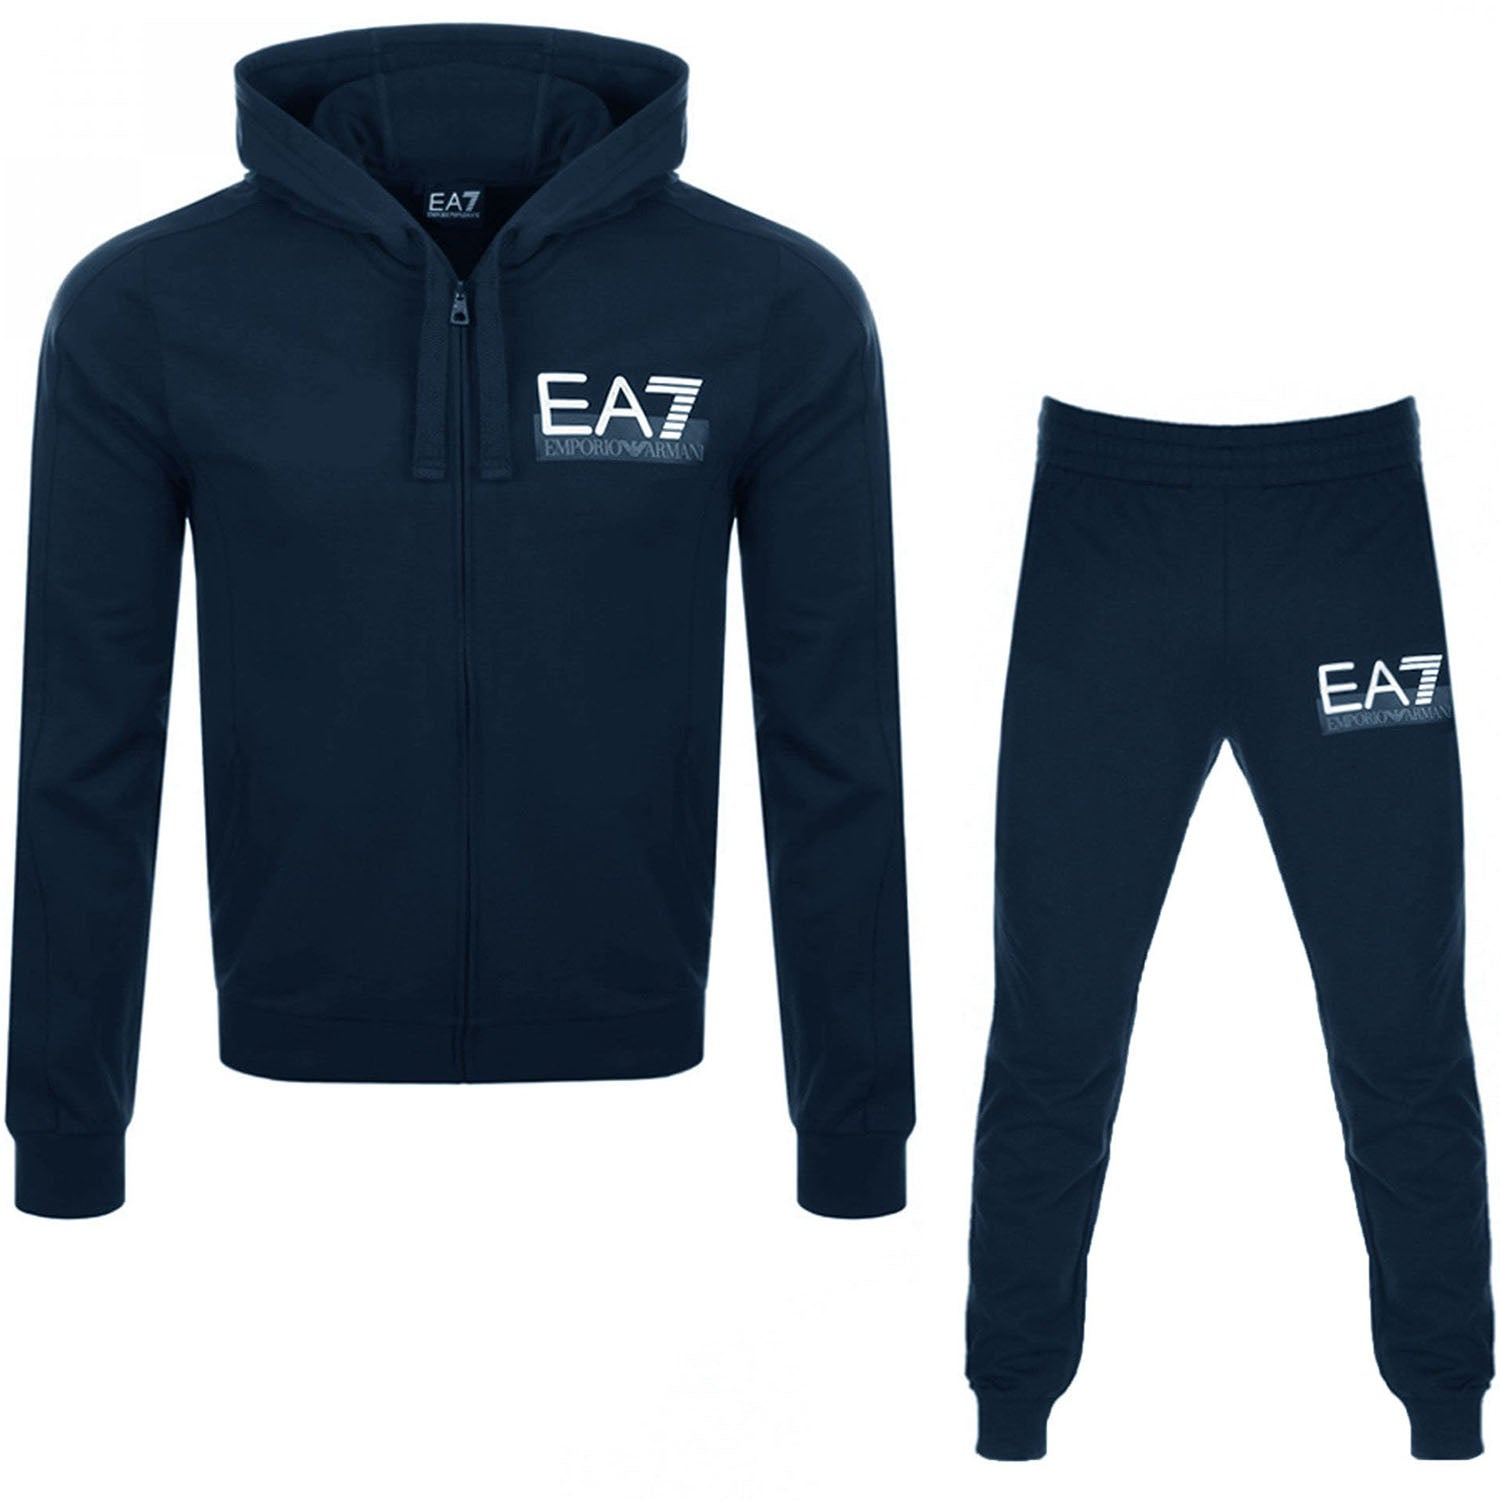 EA7 Emporio Armani Zip Up Hooded Tracksuit